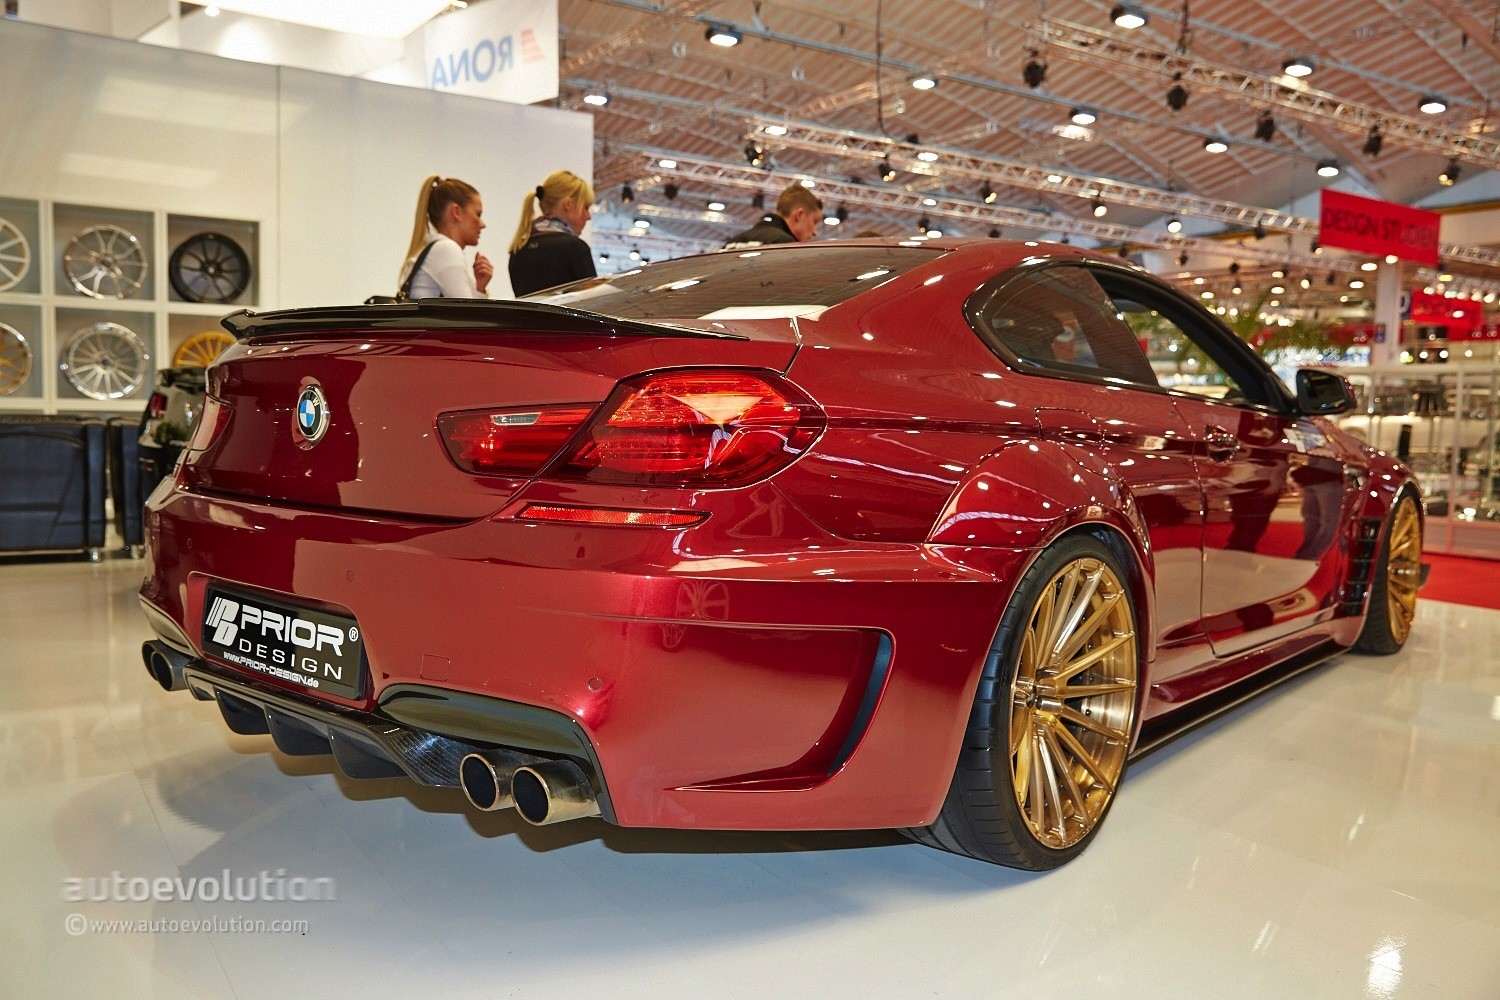 Bmw M6 Gran Coupe >> BMW M6 with a Quilted Interior Belongs to Prior Design at Essen 2014 [Live Photos] - autoevolution